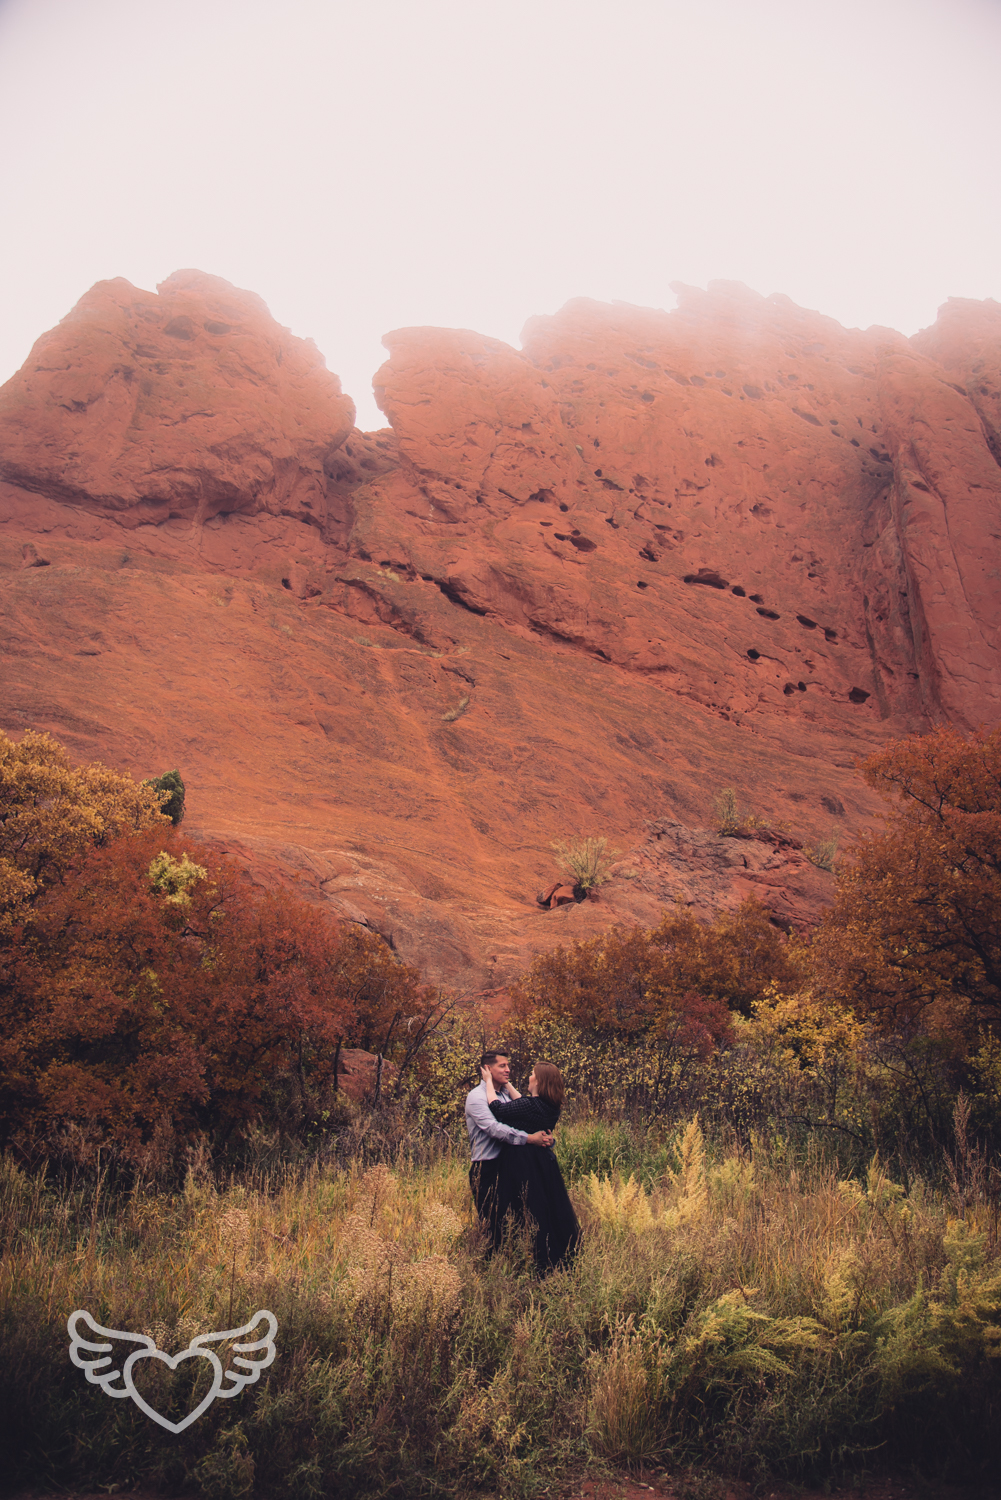 Couples_Photography_Gardenofthegods-35.jpg